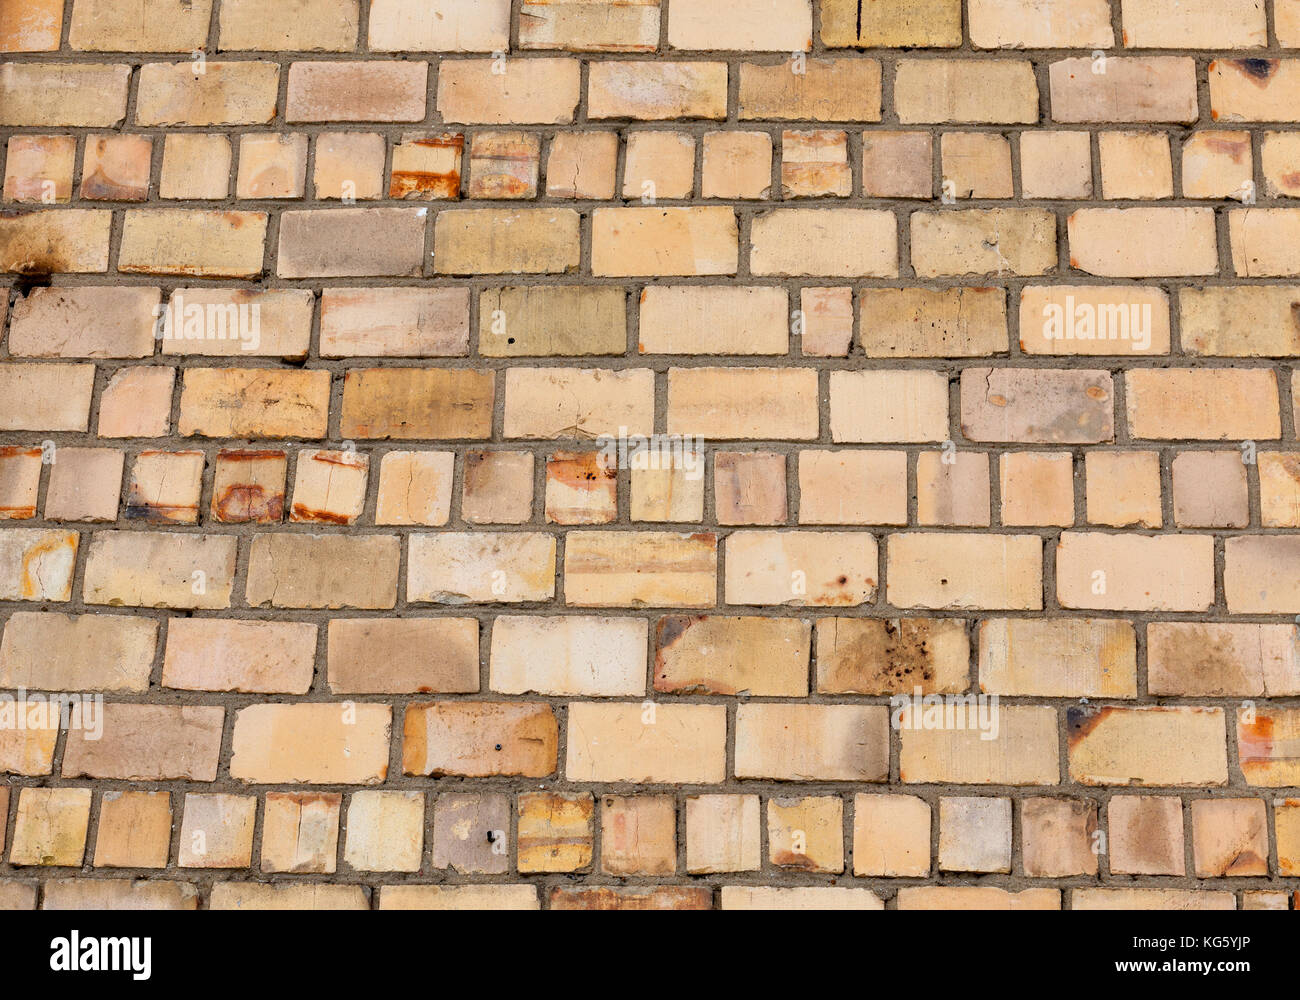 Plain wood table with hipster brick wall background stock photo - Yellow Brick Wall Stock Image